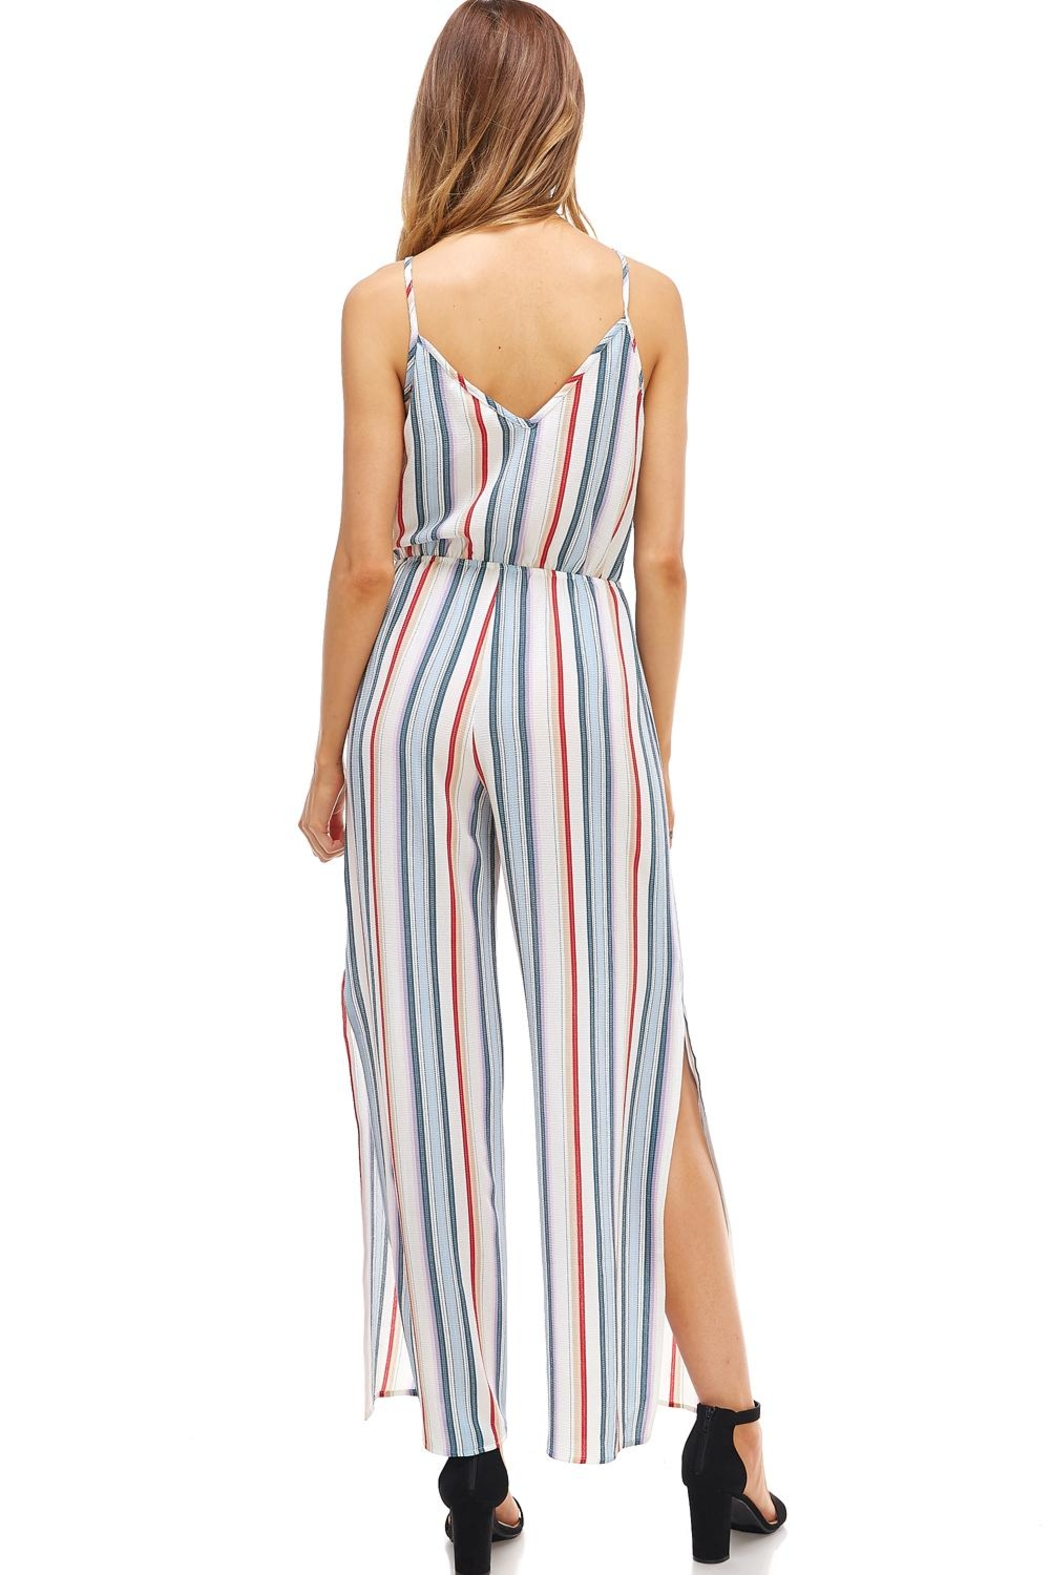 Miley and Molly Striped Surplice Jump Suit With Side Slits - Back Cropped Image